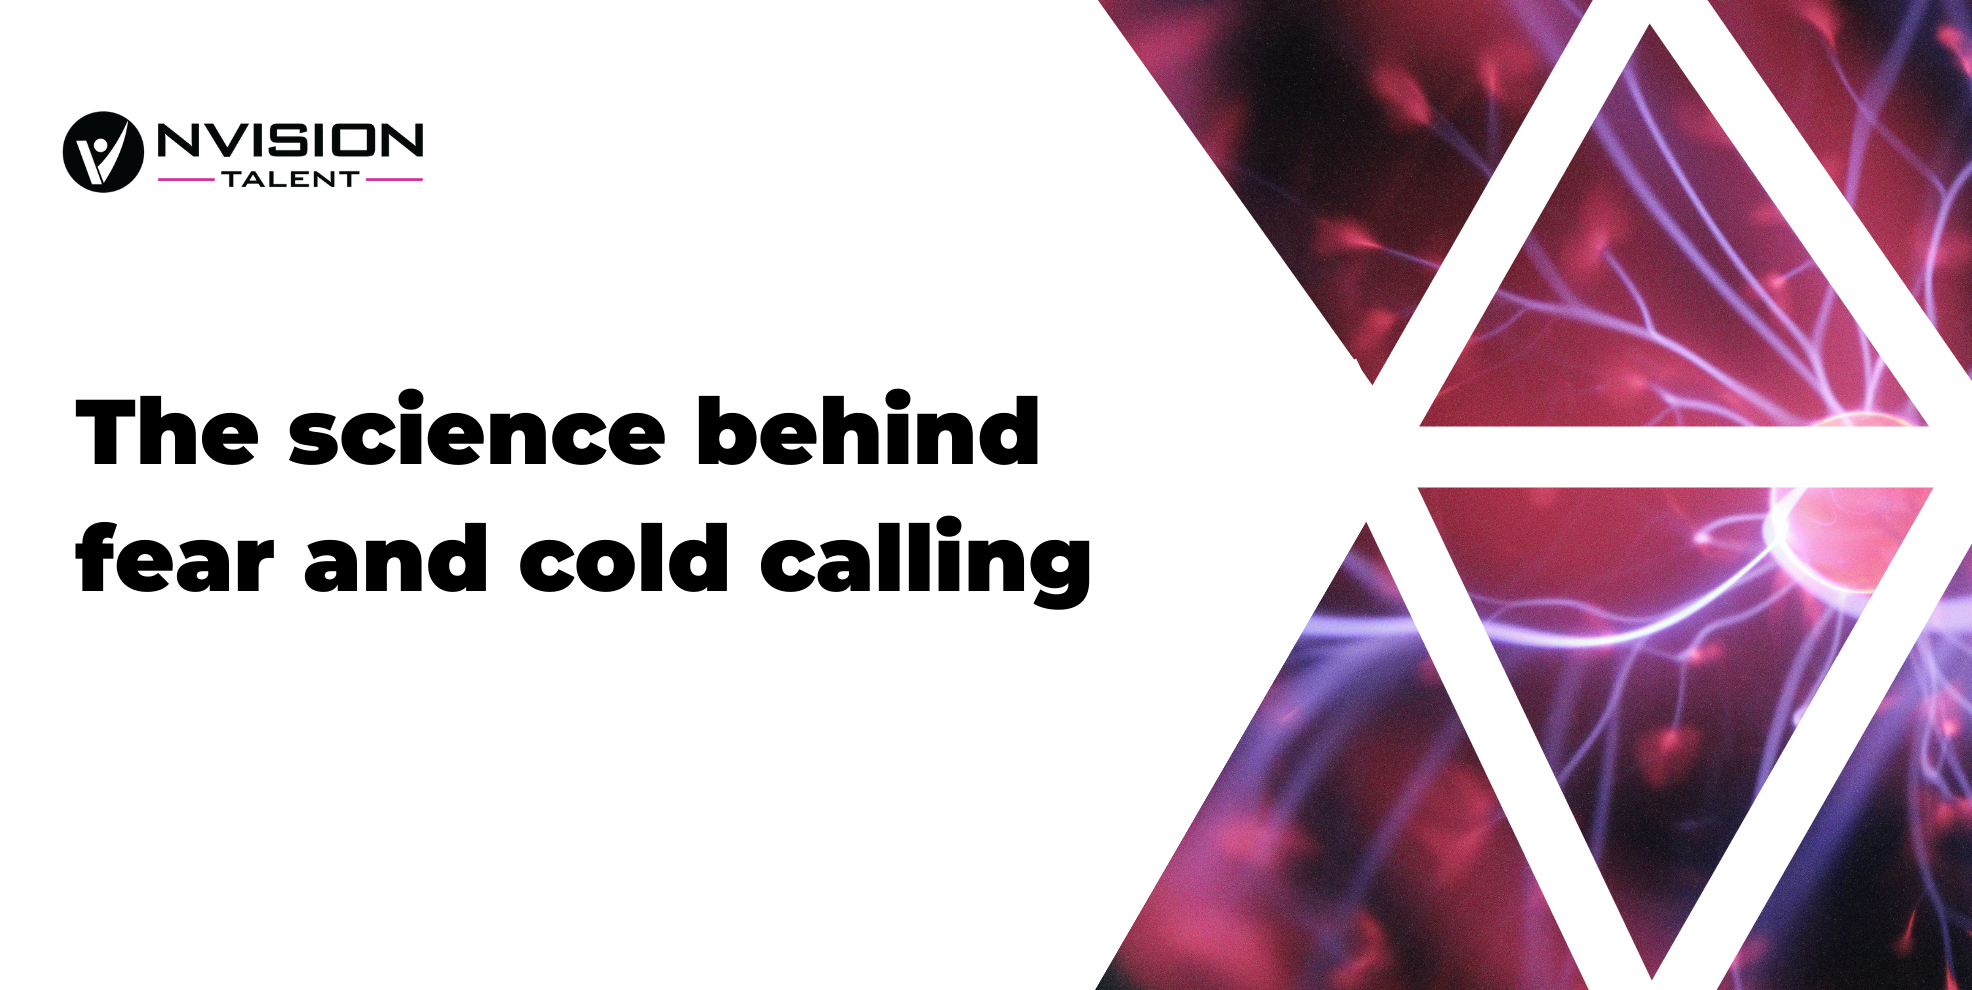 The science behind fear and cold calling